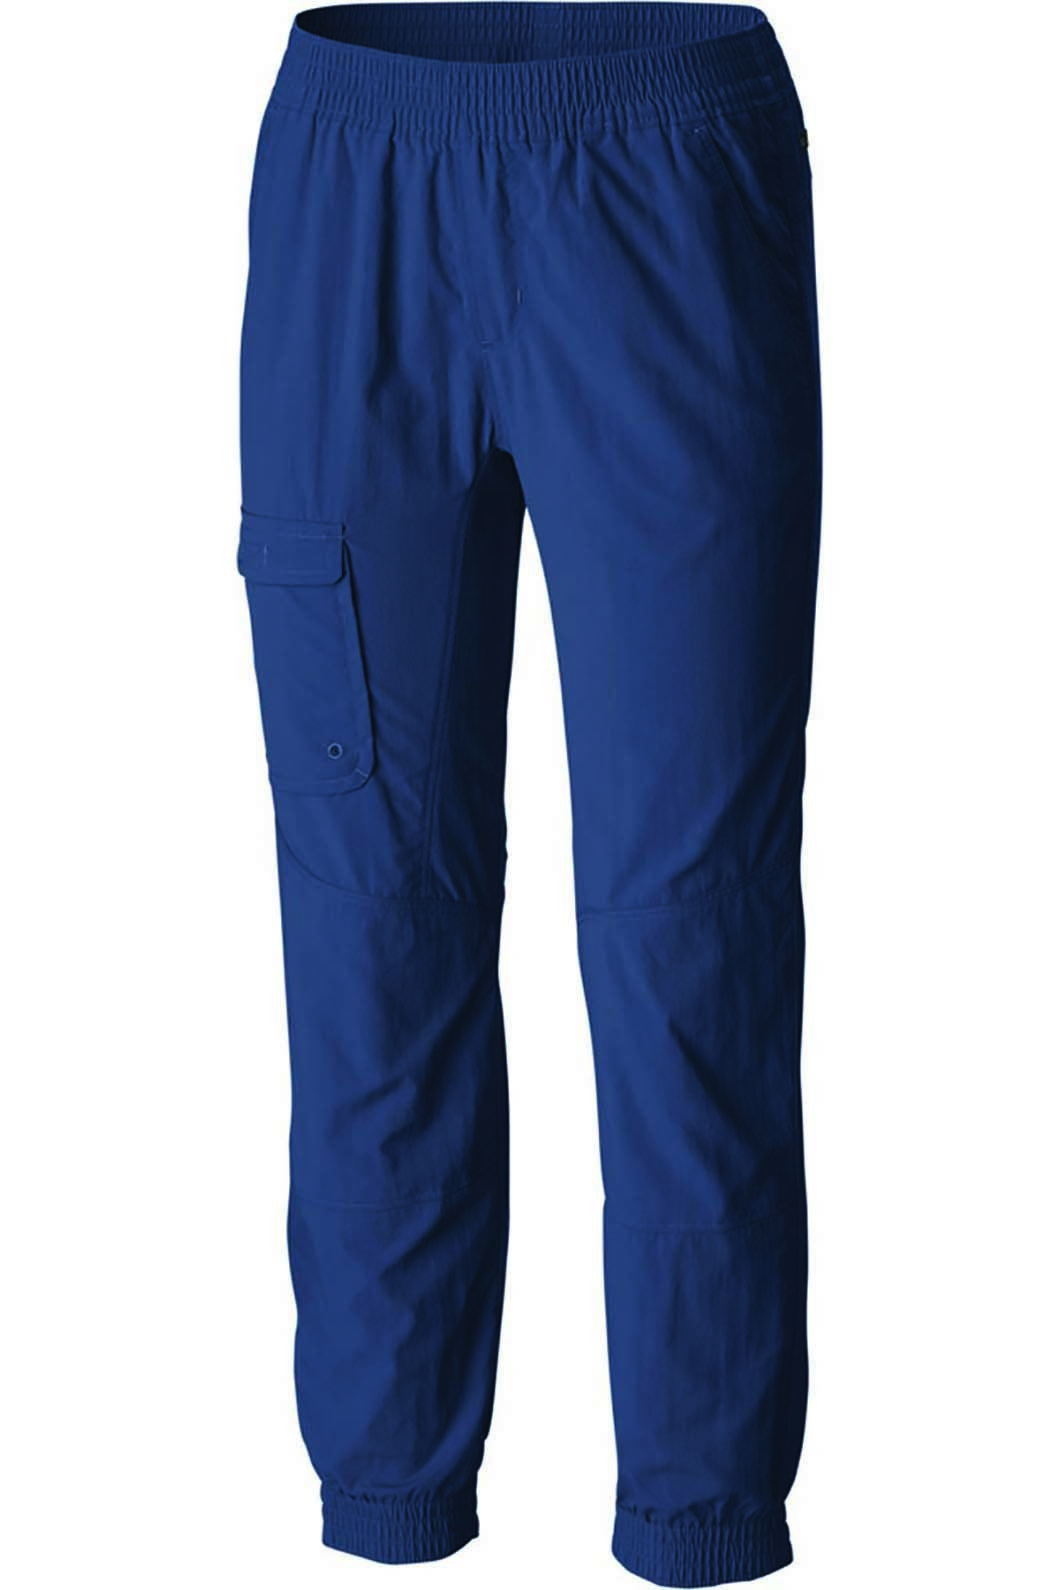 Columbia Kids'  Ridge Pull On Pant, Carbon, hi-res